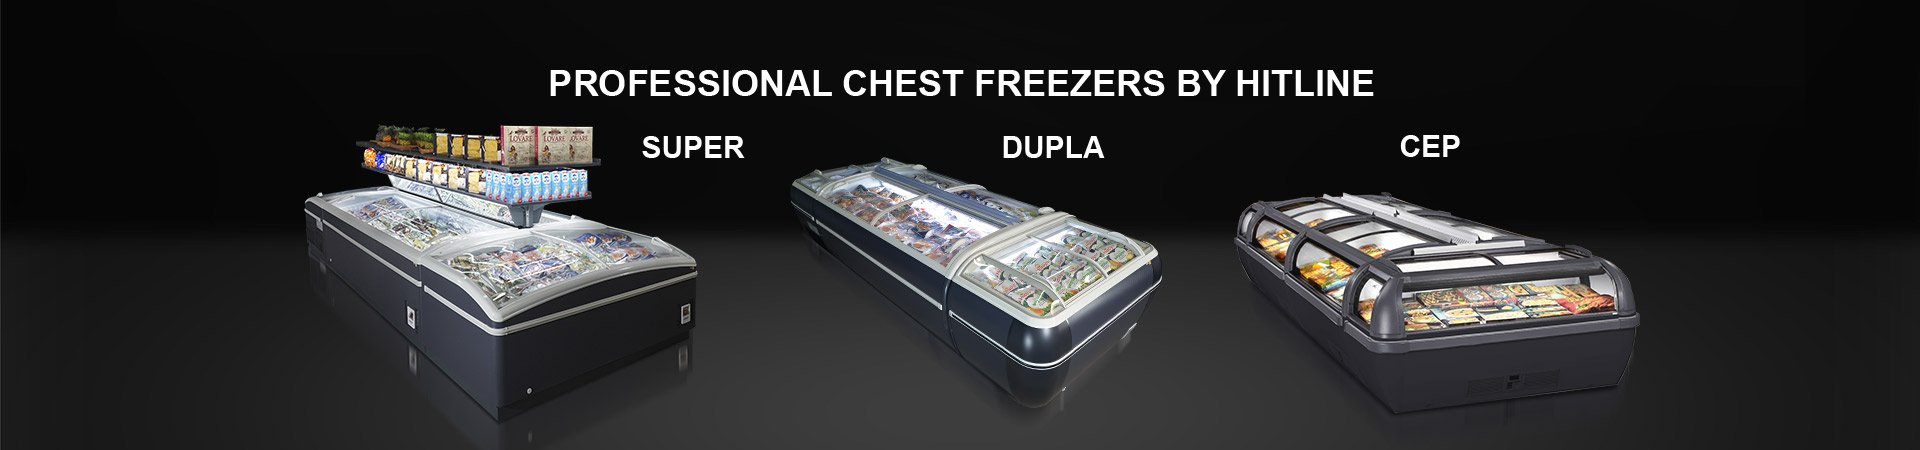 professional chest freezers by Hitline